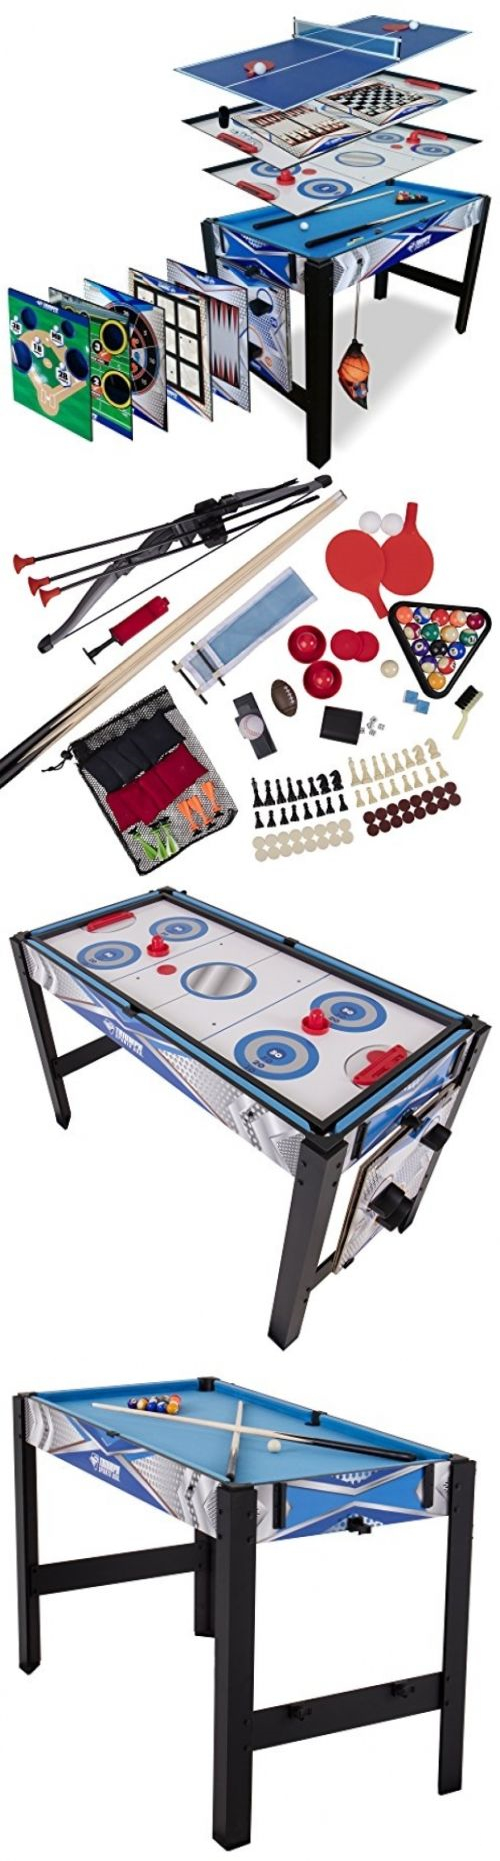 Other Indoor Games 36278: Triumph 13 In 1 Combo Game Table  U003e